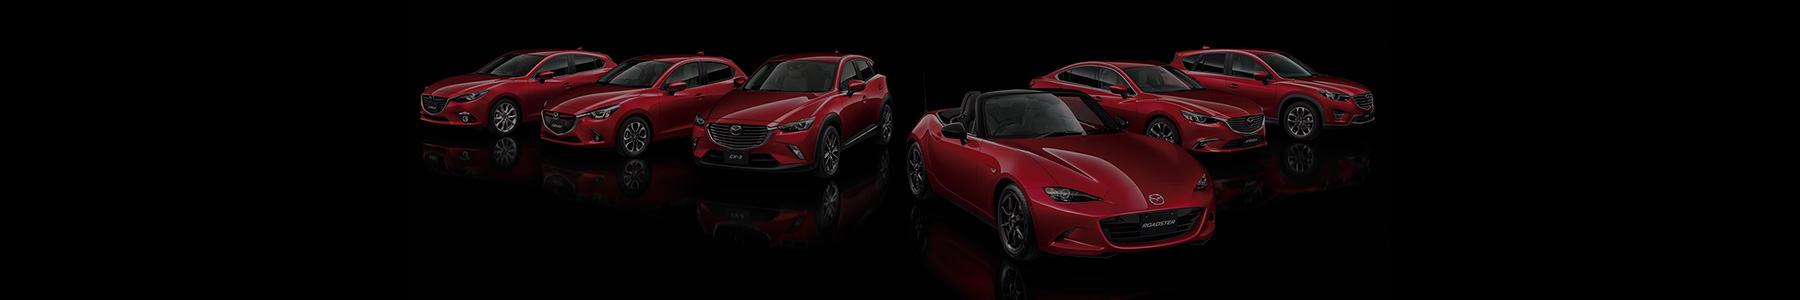 MAZDA: Mazda's History of World Car of the Year Awards | External